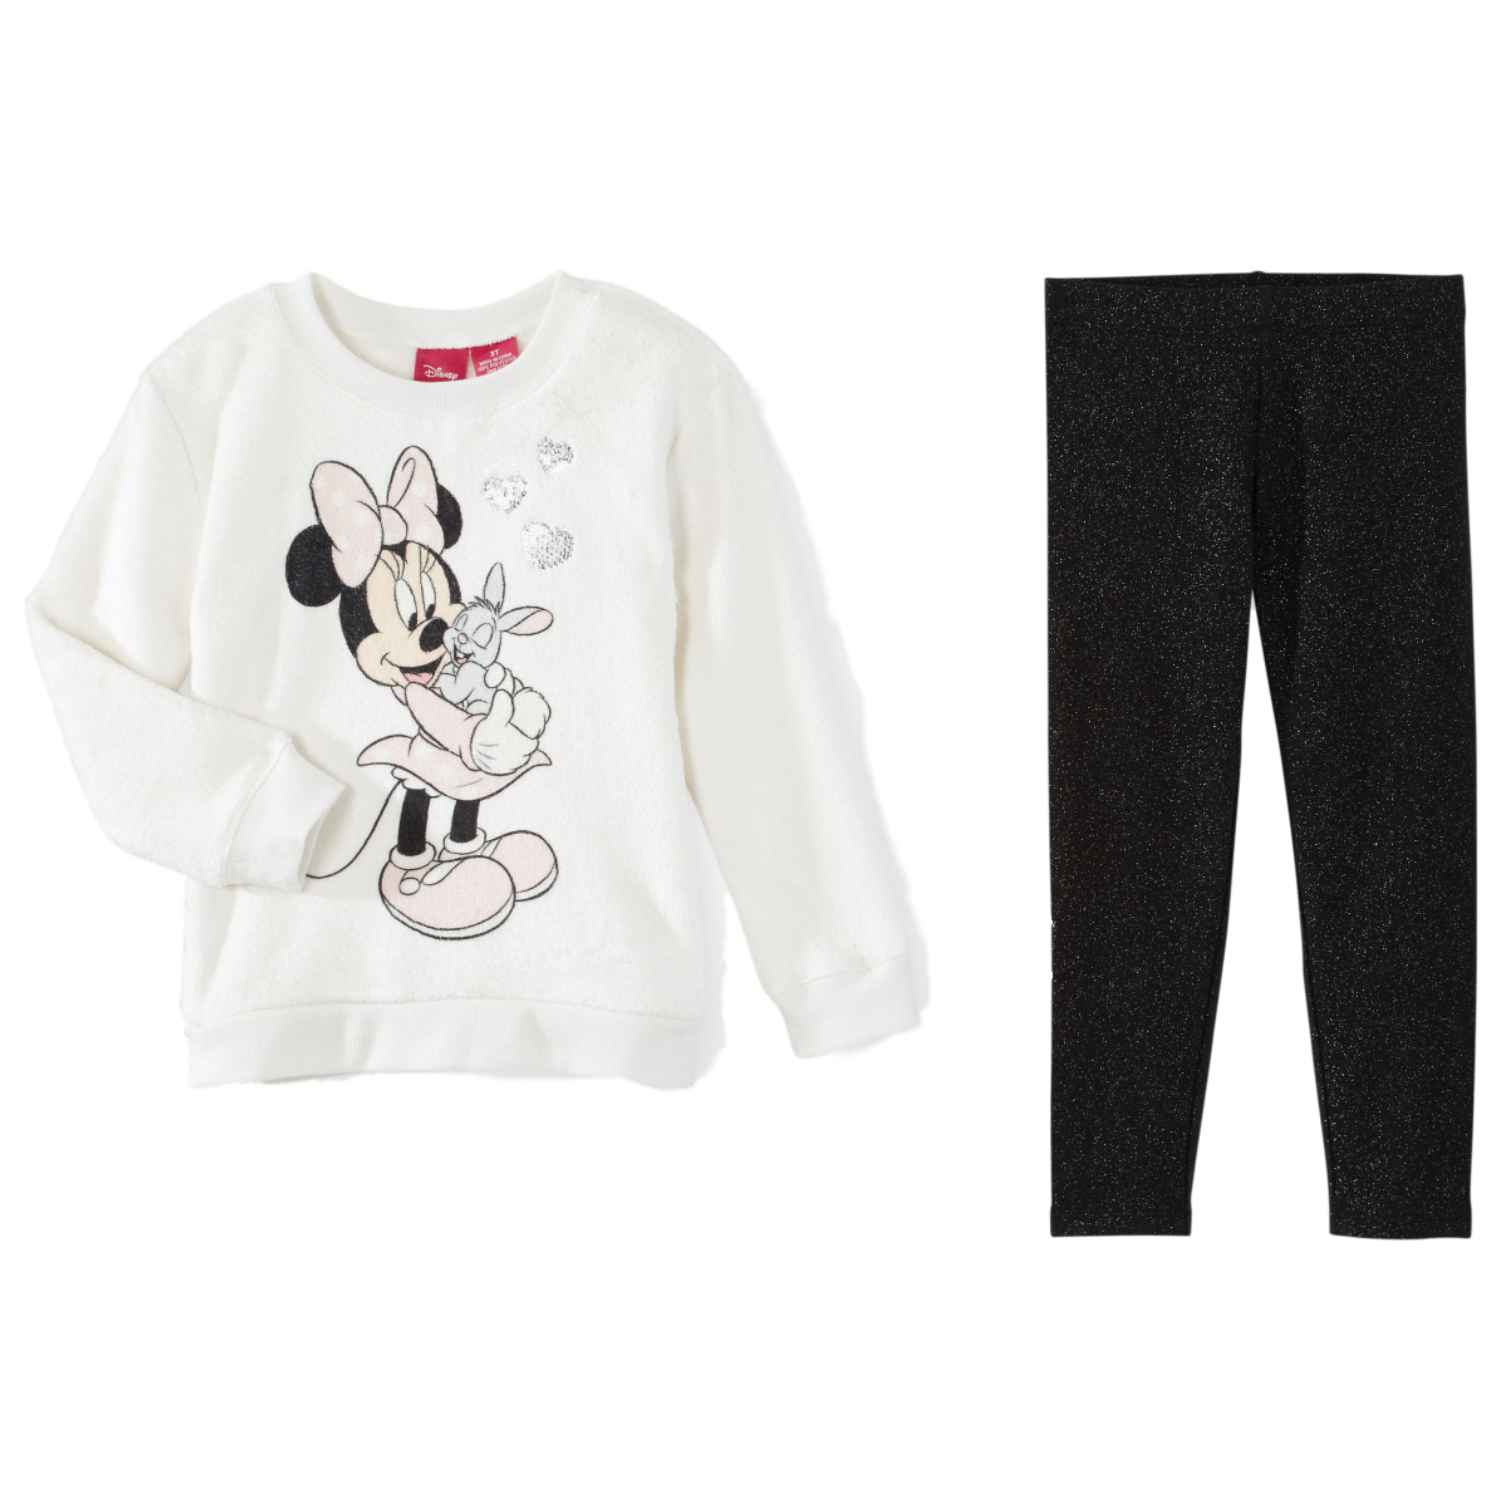 Disney Infant Girls Minnie Mouse & Thumper Bunny Baby Outfit Shirt & Leggings